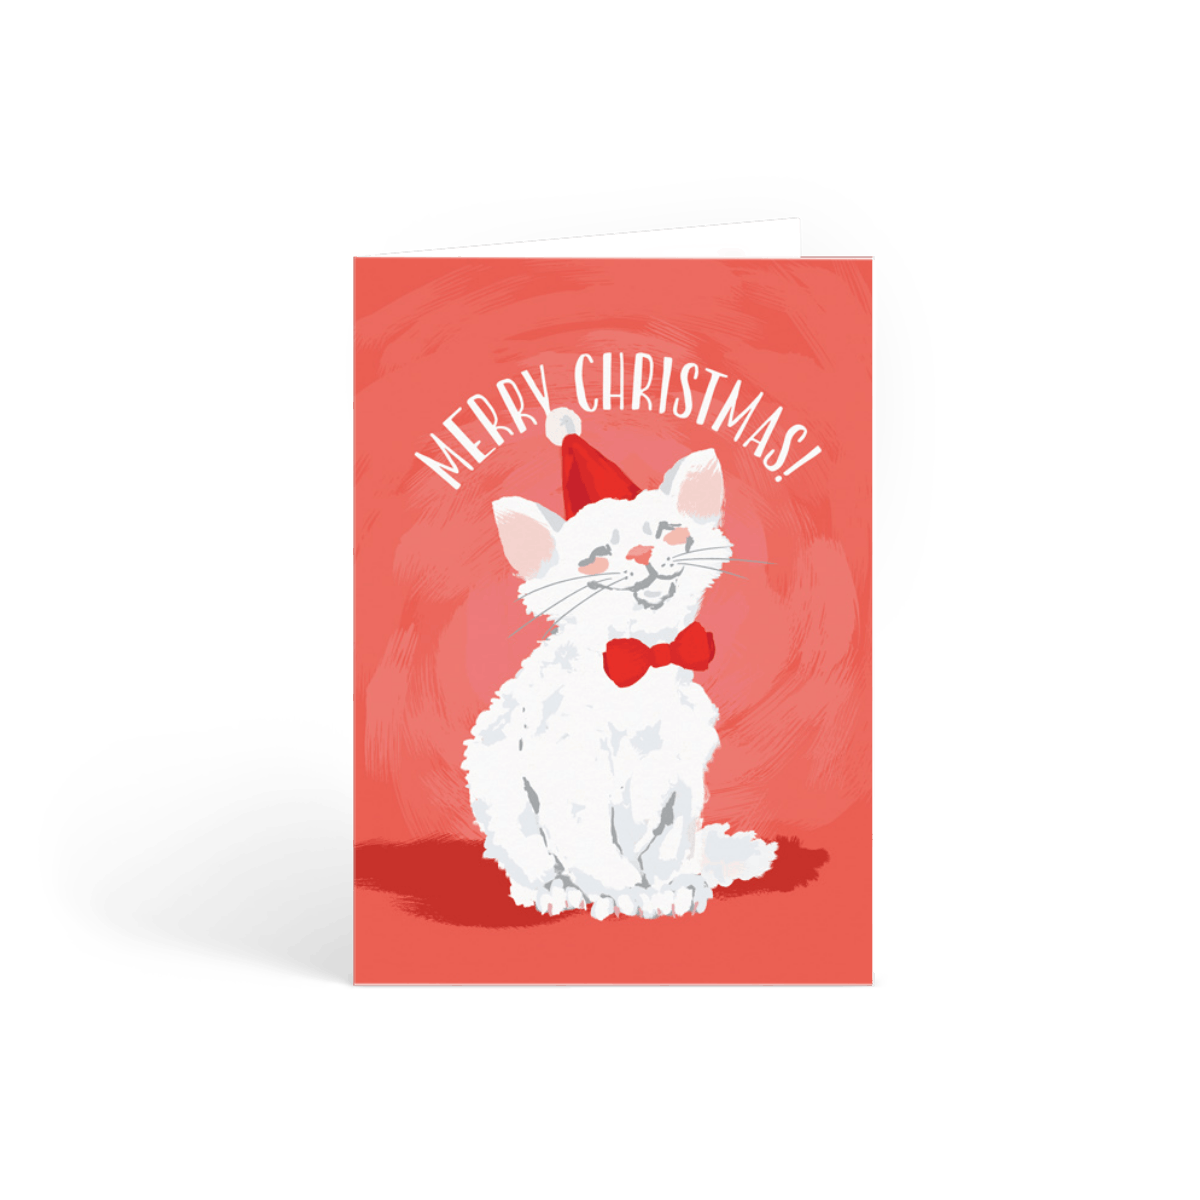 Https%3a%2f%2fwww.papier.com%2fproduct image%2f23660%2f2%2fchristmas kitten 5934 front 1541422479.png?ixlib=rb 1.1